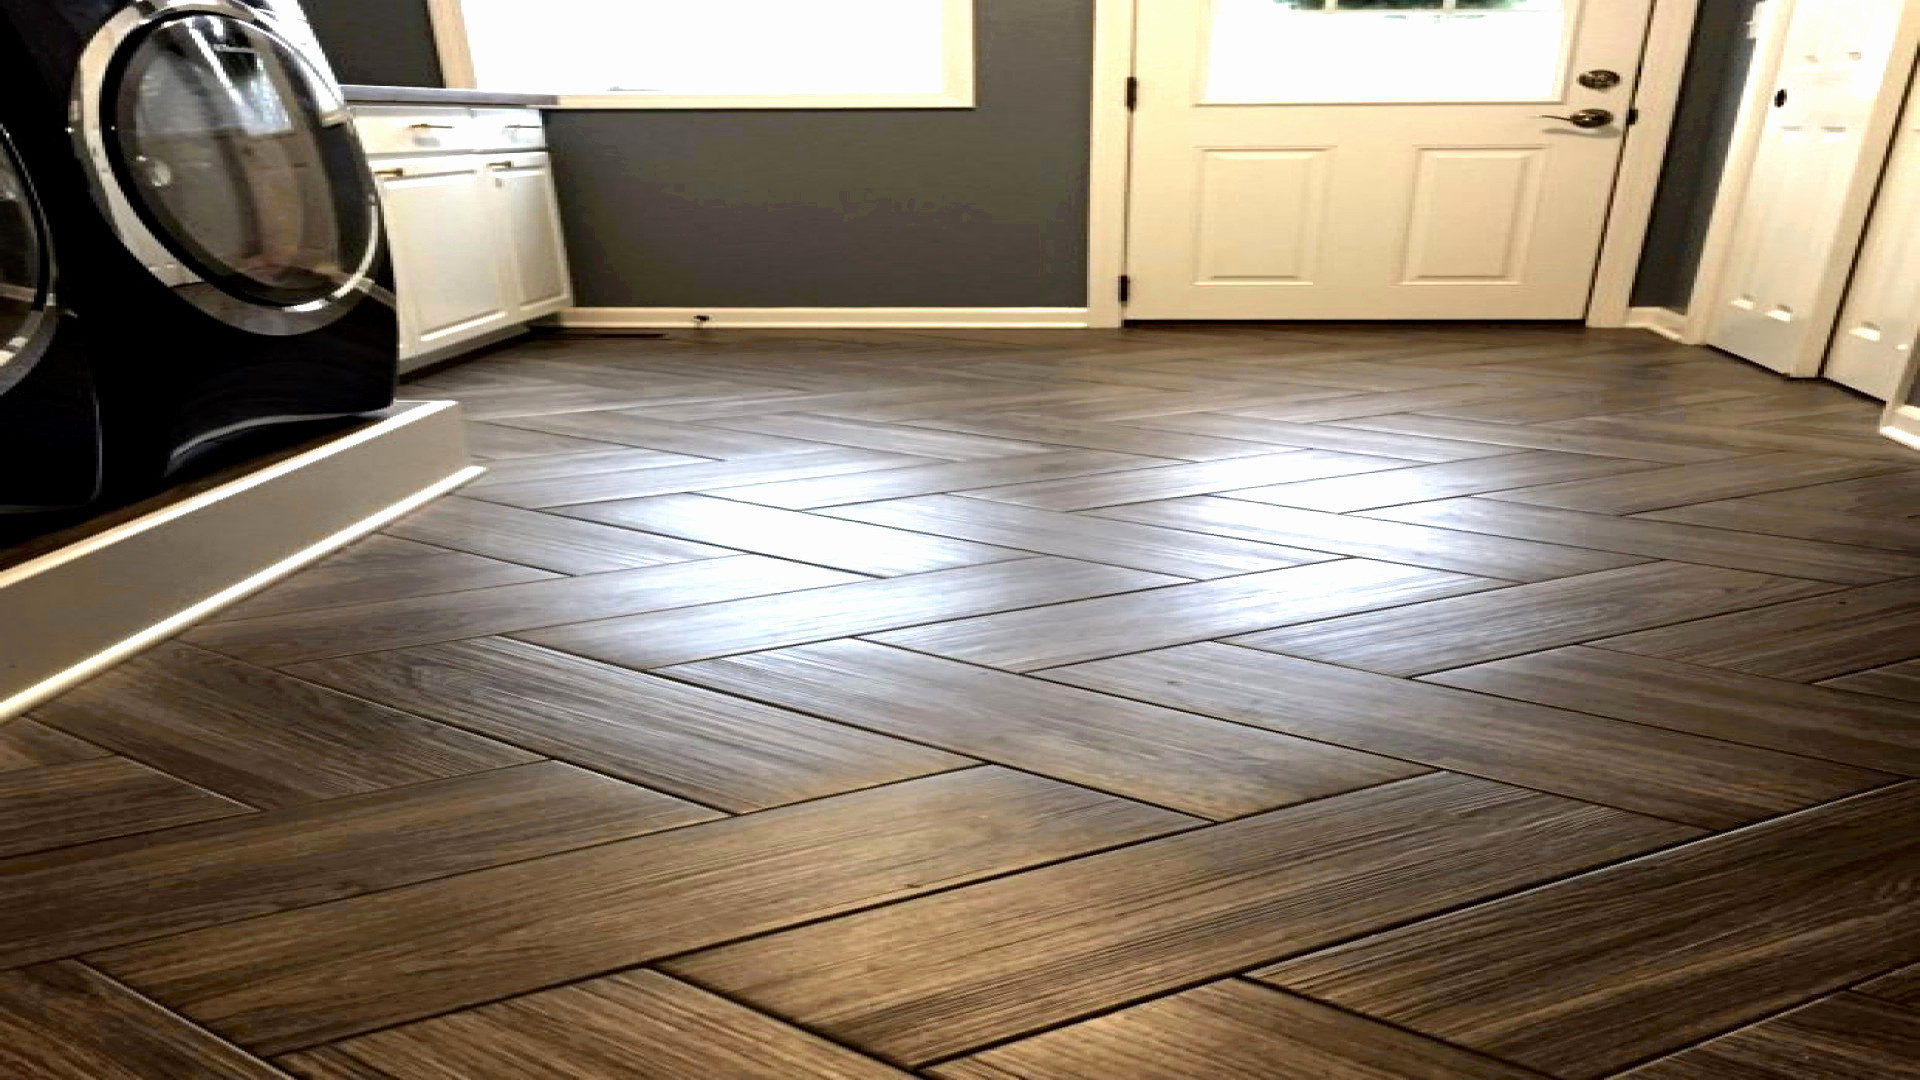 10 Elegant Vinyl Hardwood Floor Cleaner Unique Flooring Ideas